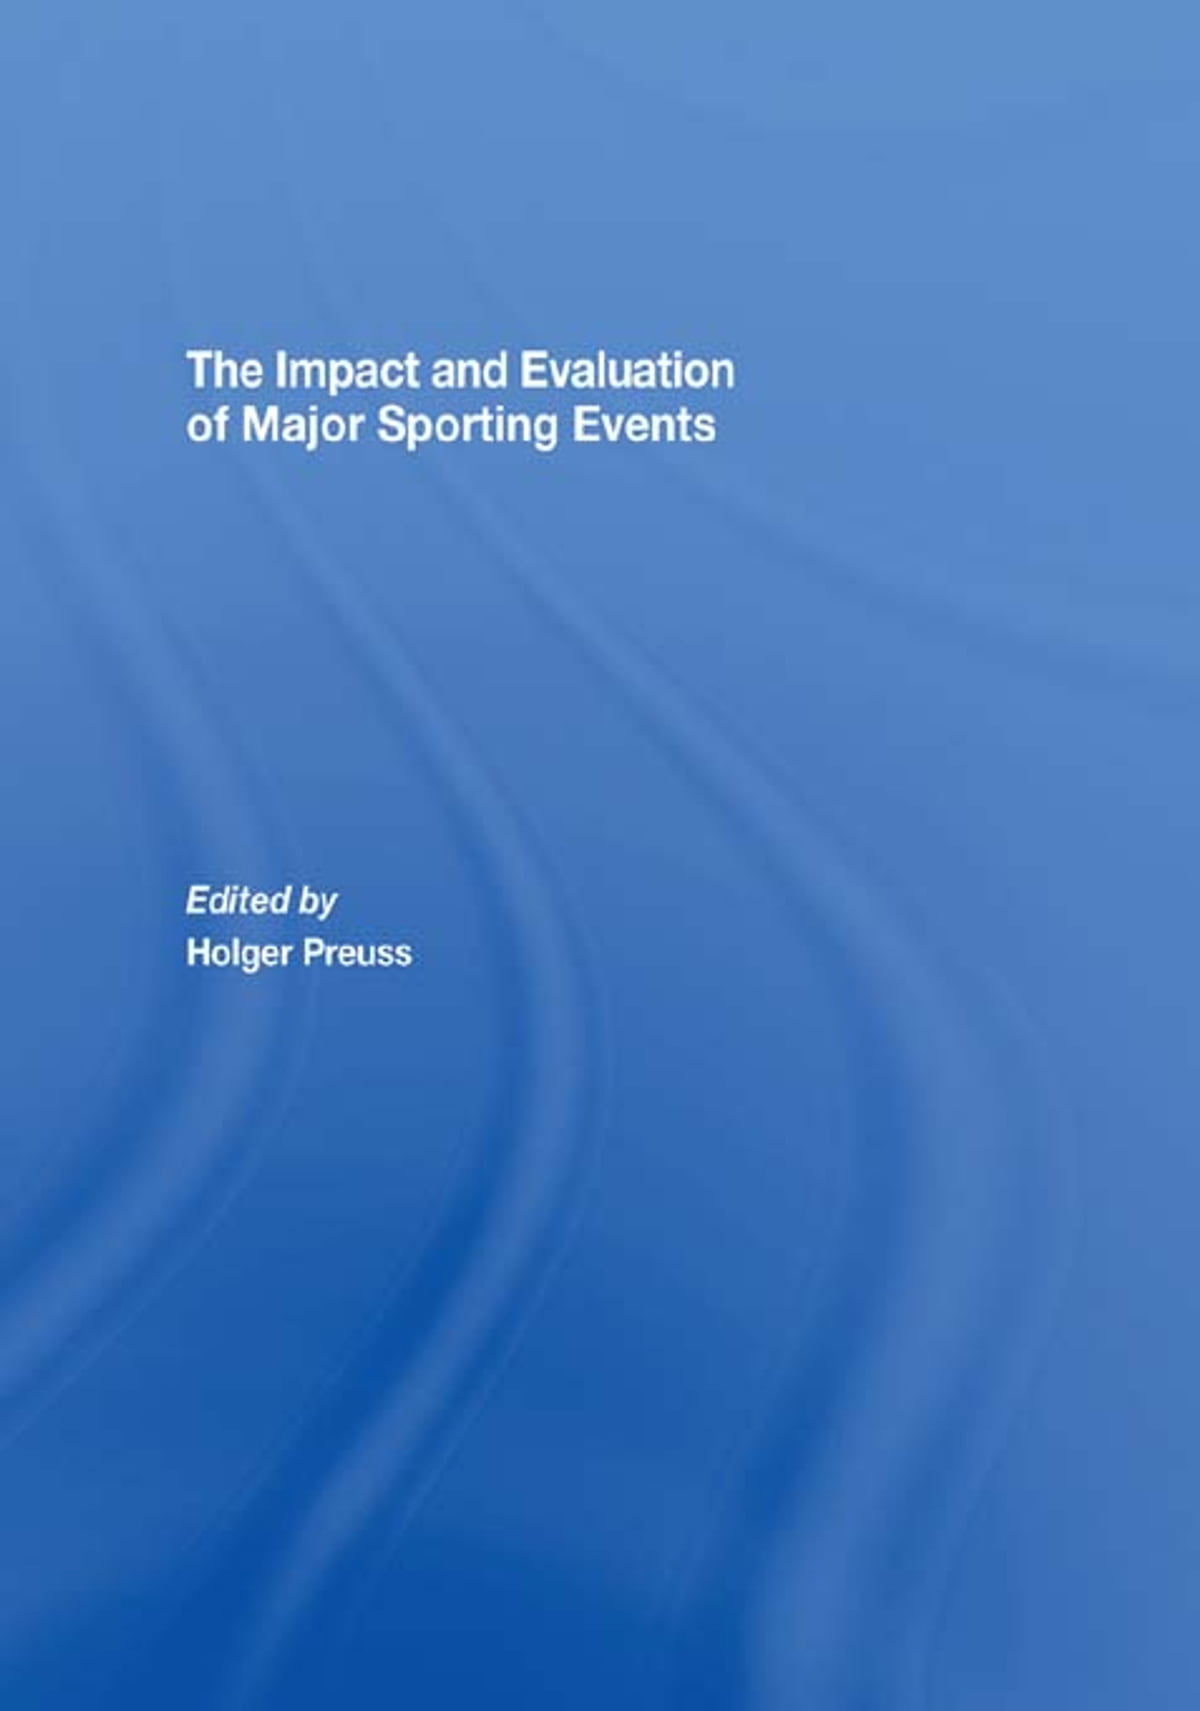 impact of major sports events on the economy Economy mules and faulkner's basic point is  the economic impact of major sports events is normally assessed using multiplier analy-sis multiplier analysis converts the total  economic importance of major sports events 19 multiplier value of 02 was used for the events.